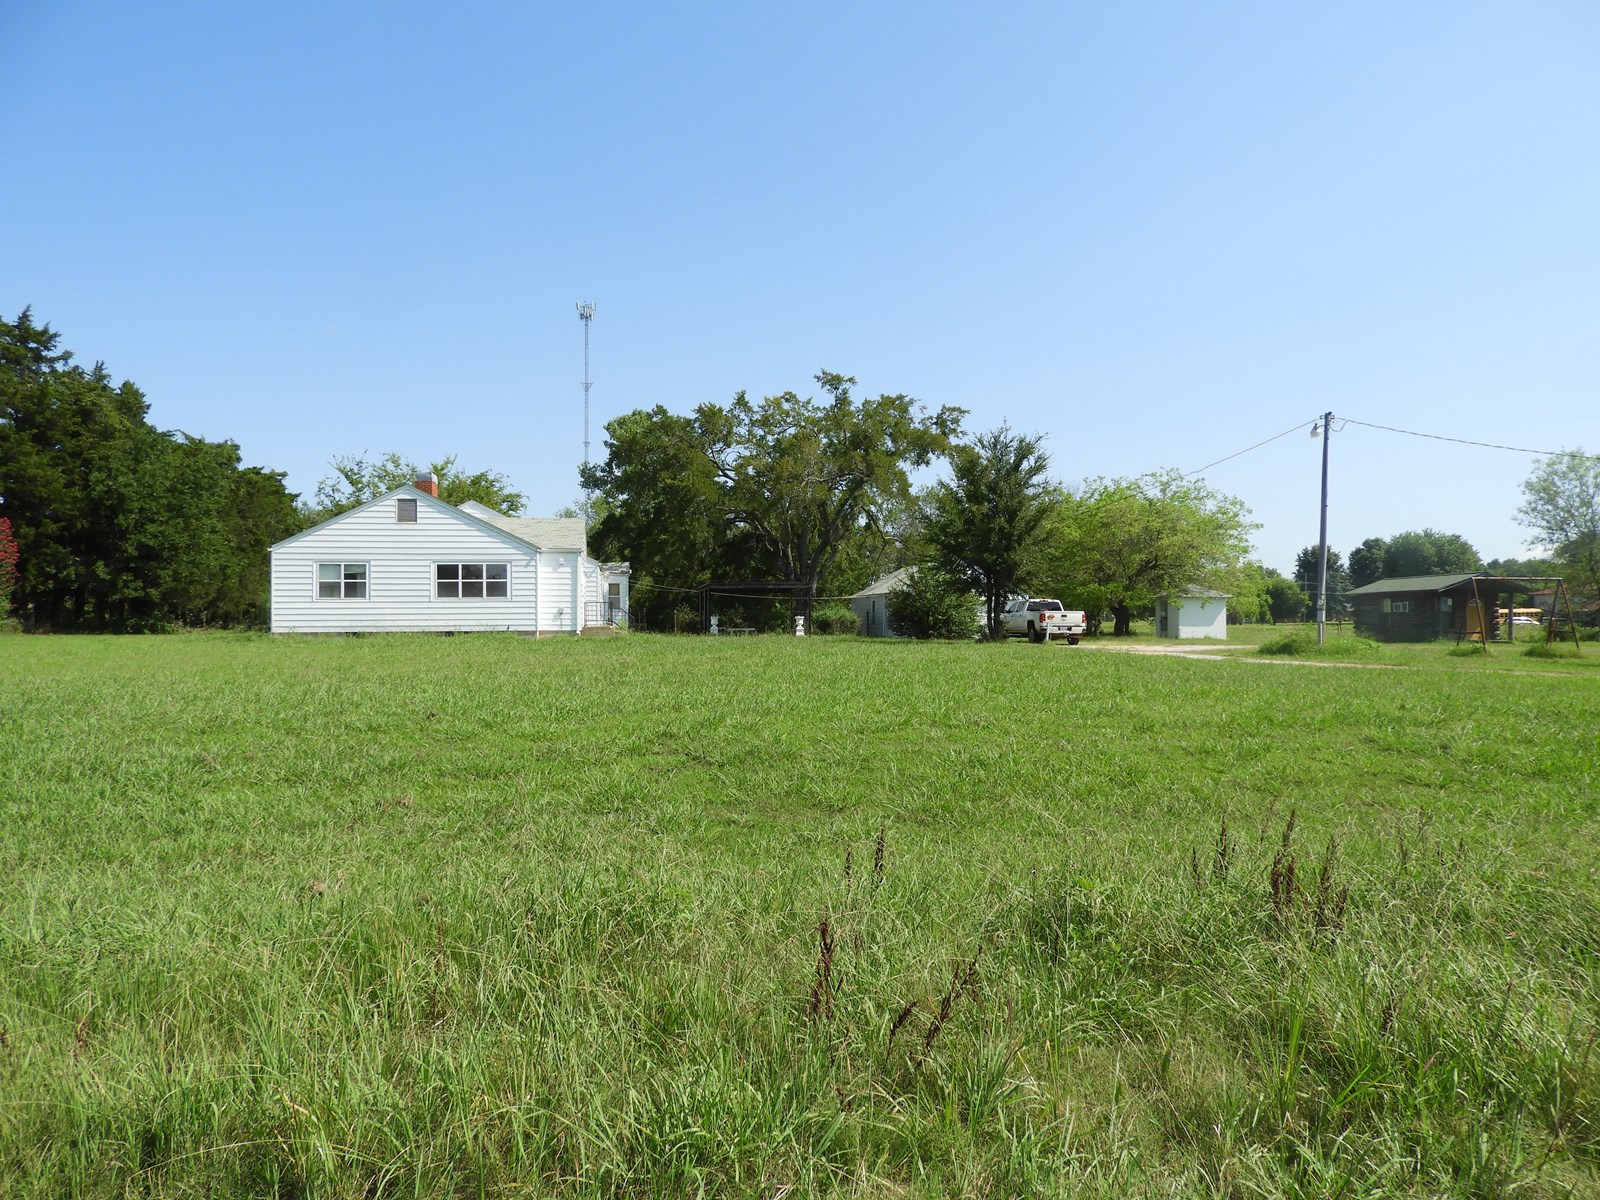 No Reserve Real Estate 7 ac on Hwy 3, Shawnee, OK Aug 23